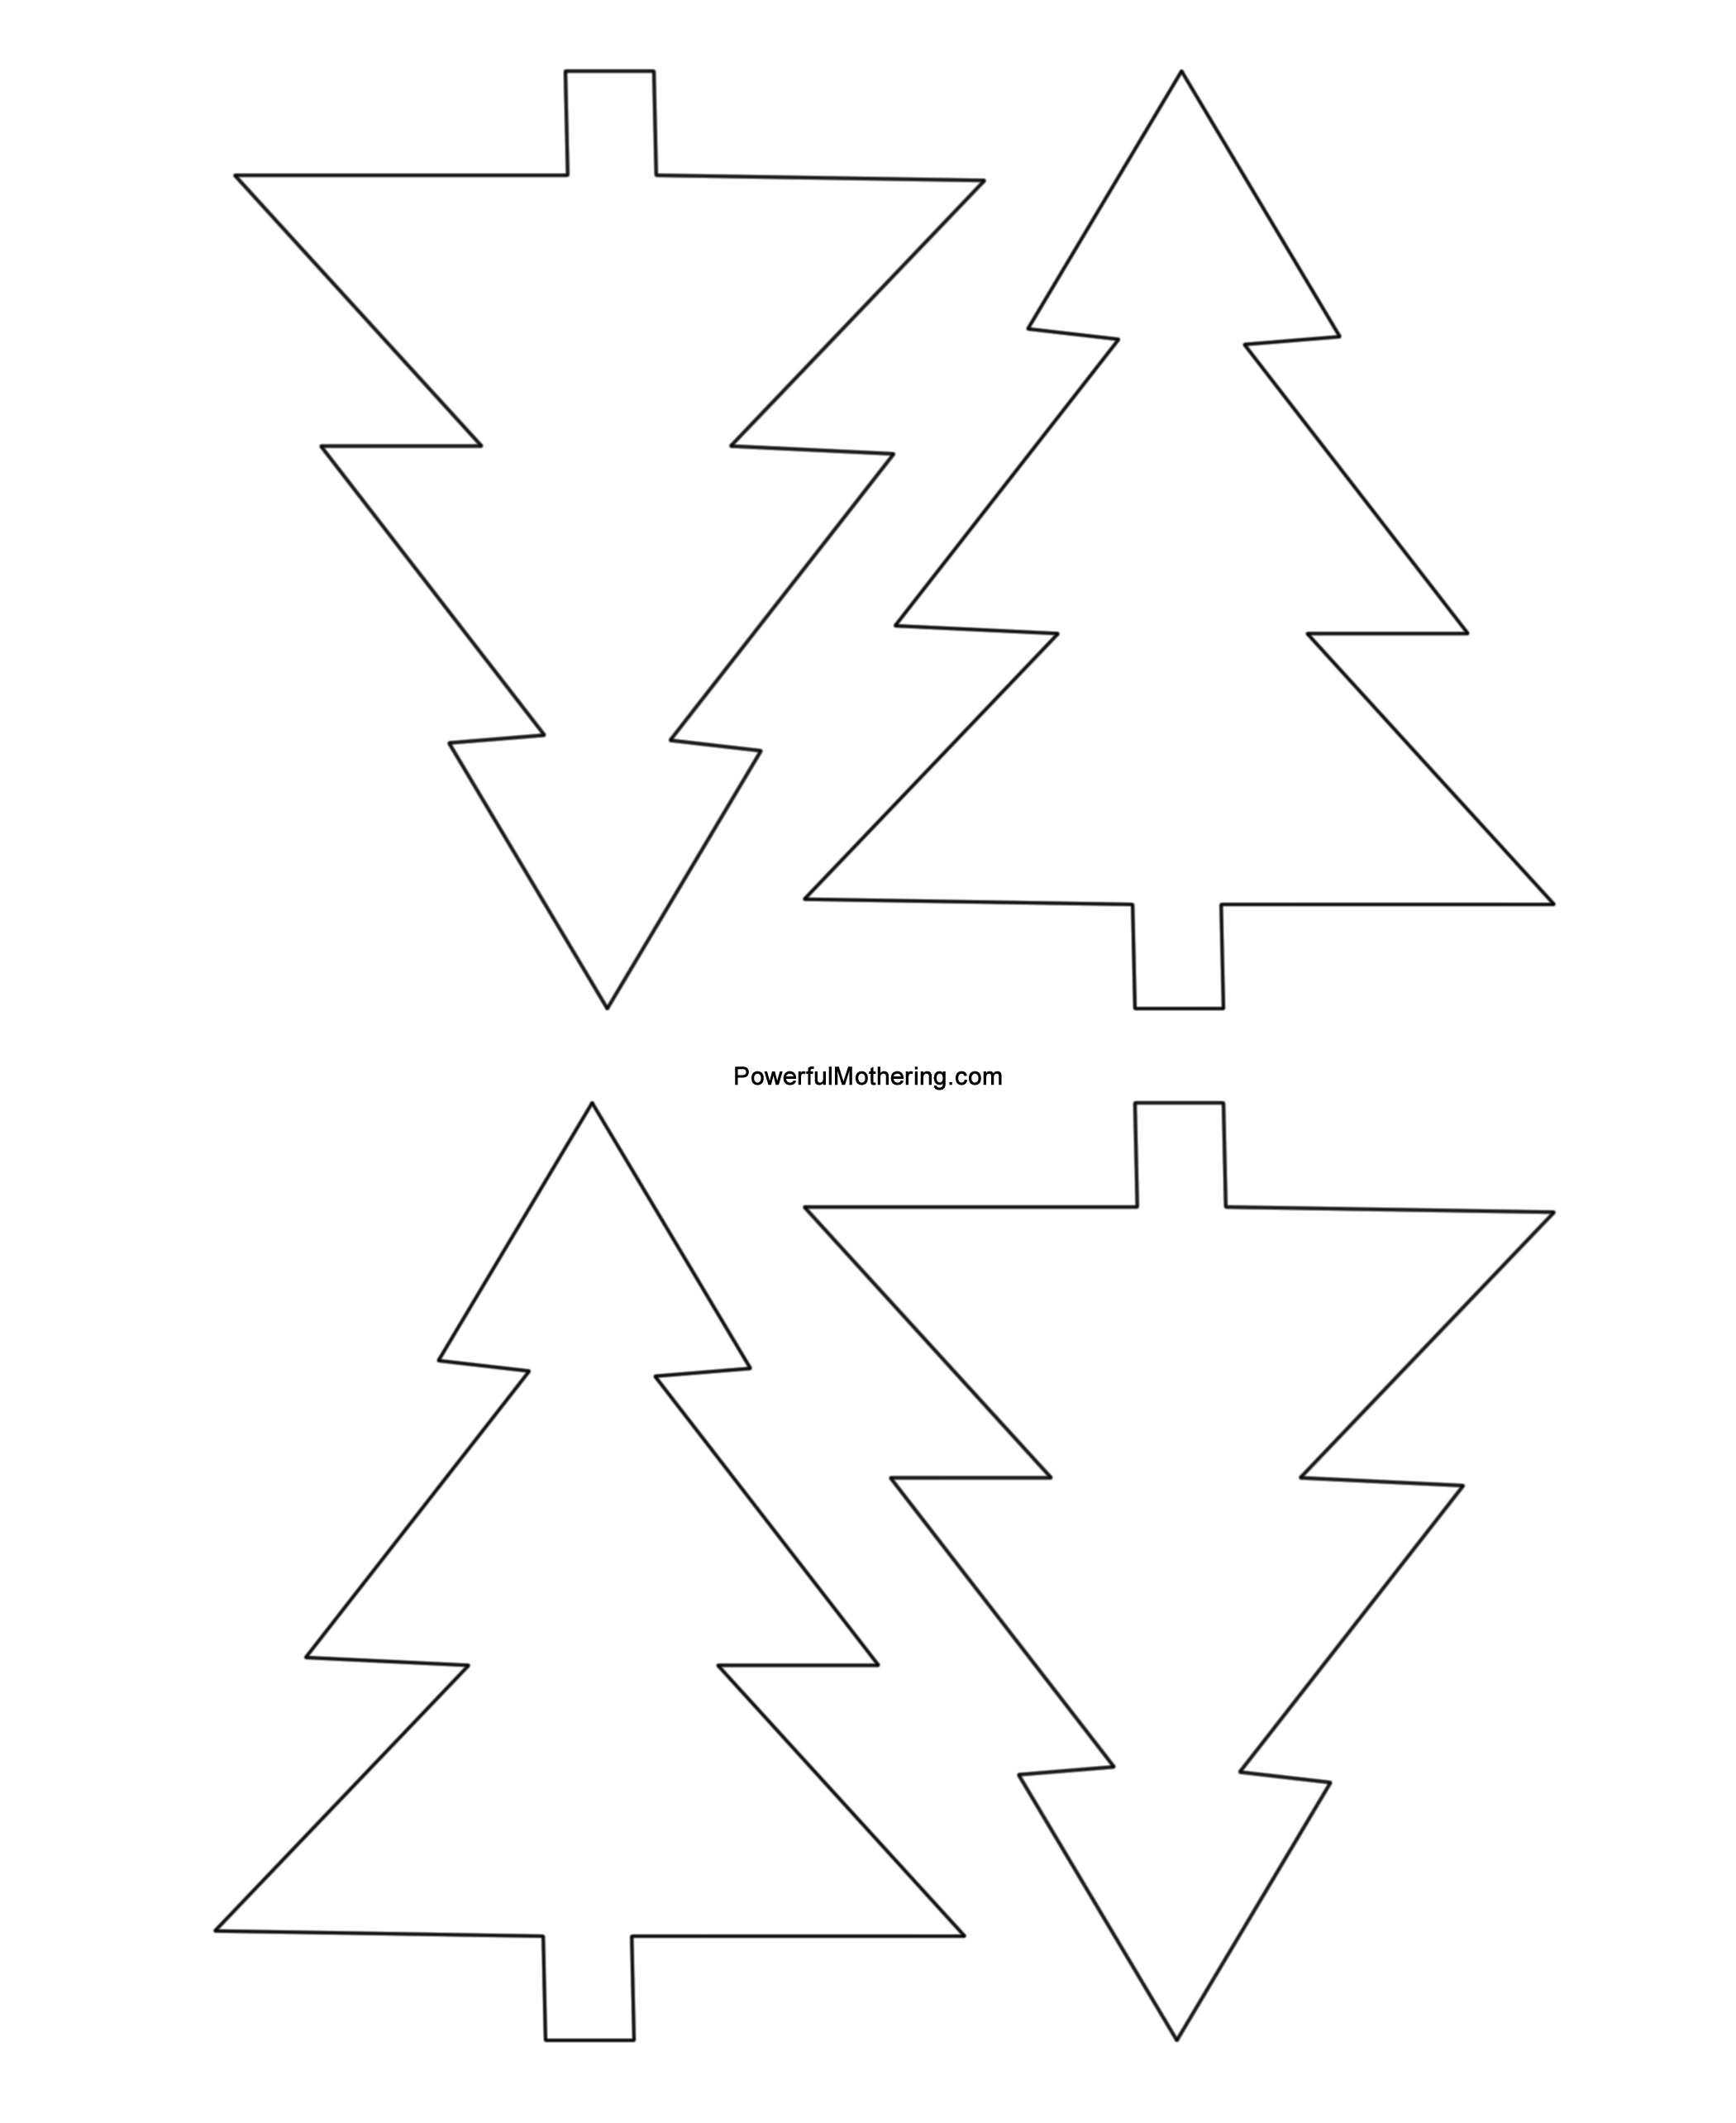 Free Stencil Of A Tree Outline Download Free Clip Art Free Clip Art On Clipart Library